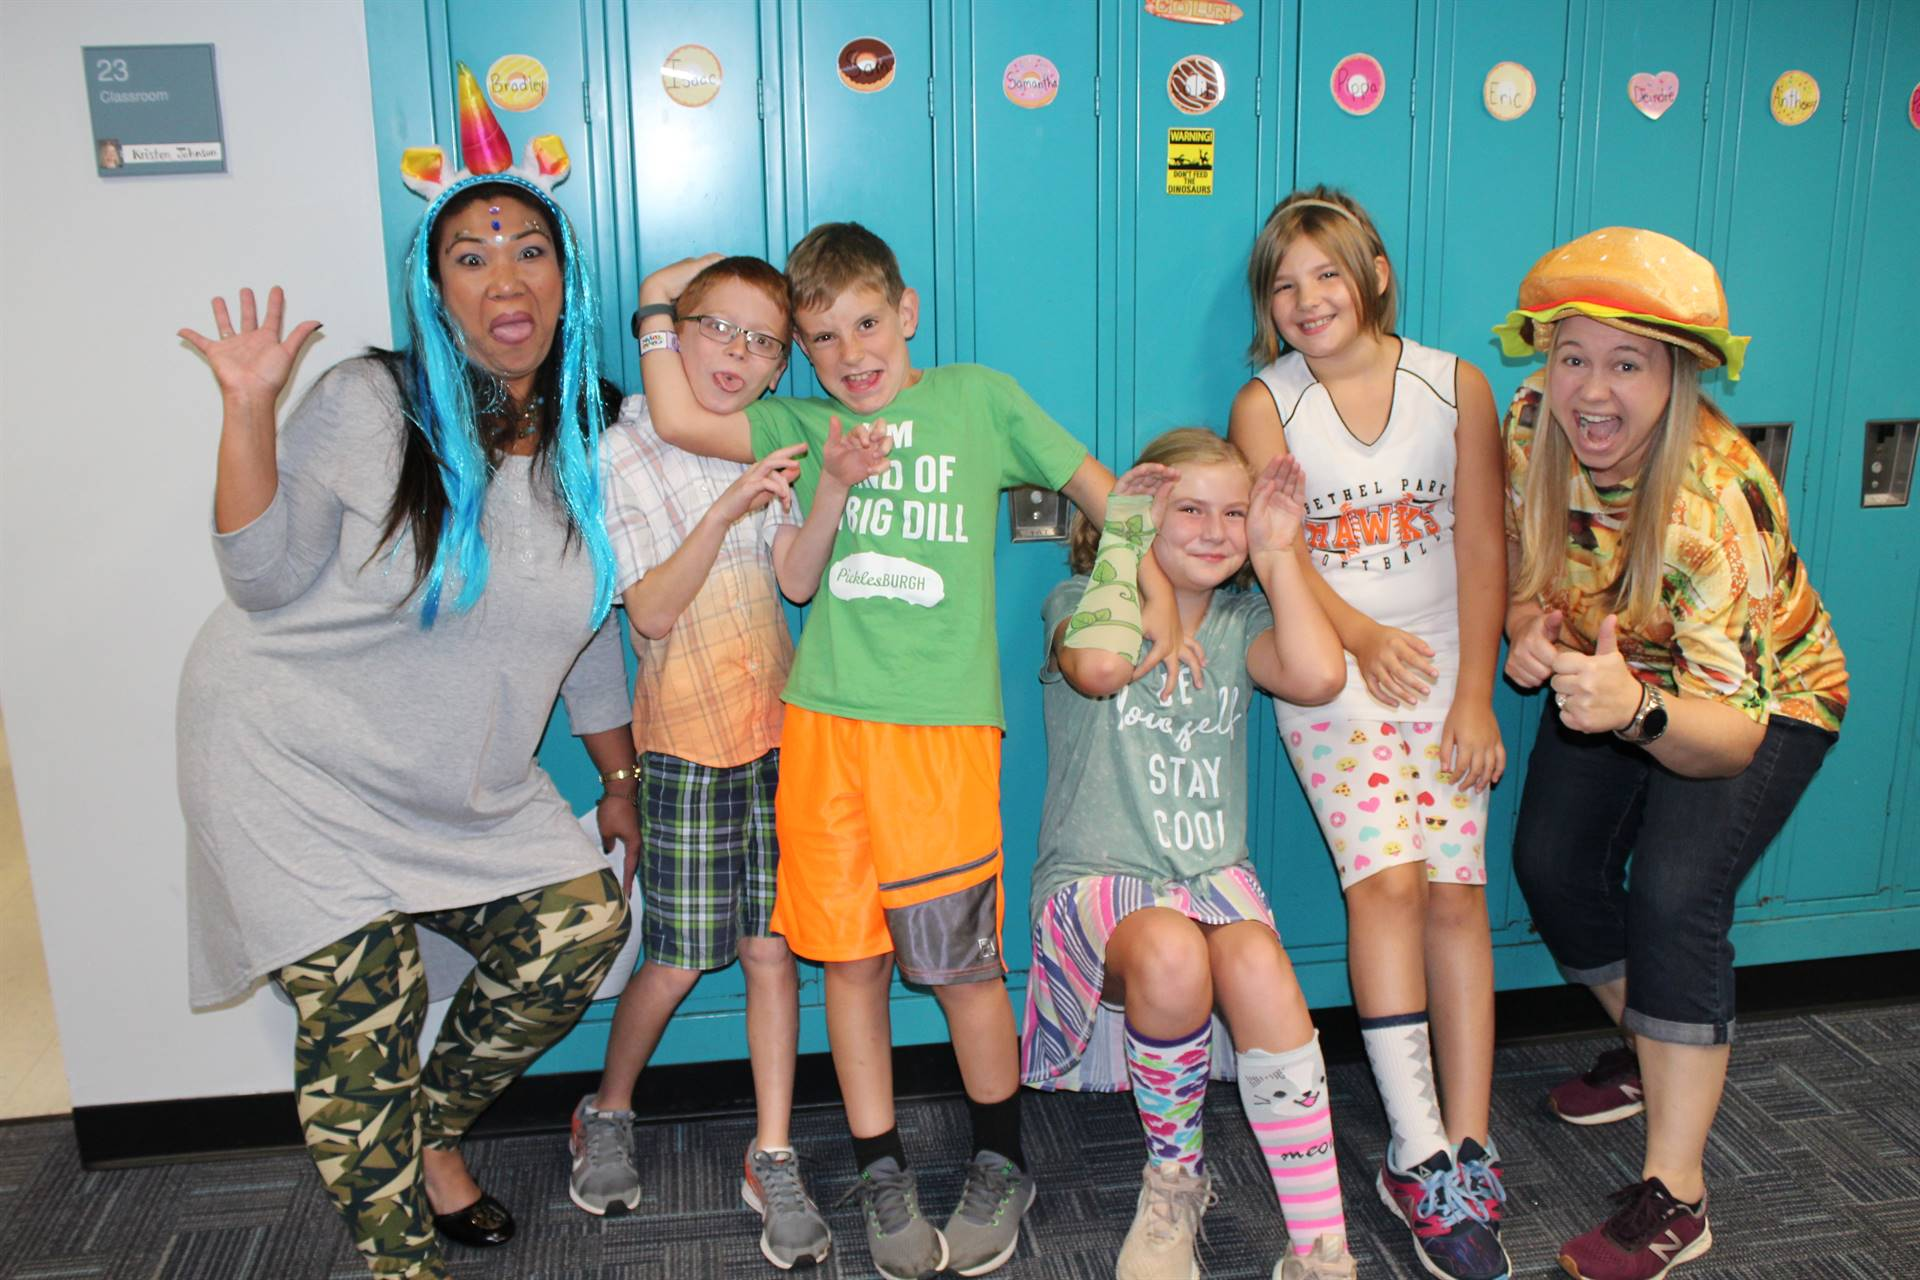 Mrs. Doumont, Mrs. Meucci and four students on Wacky Wednesday